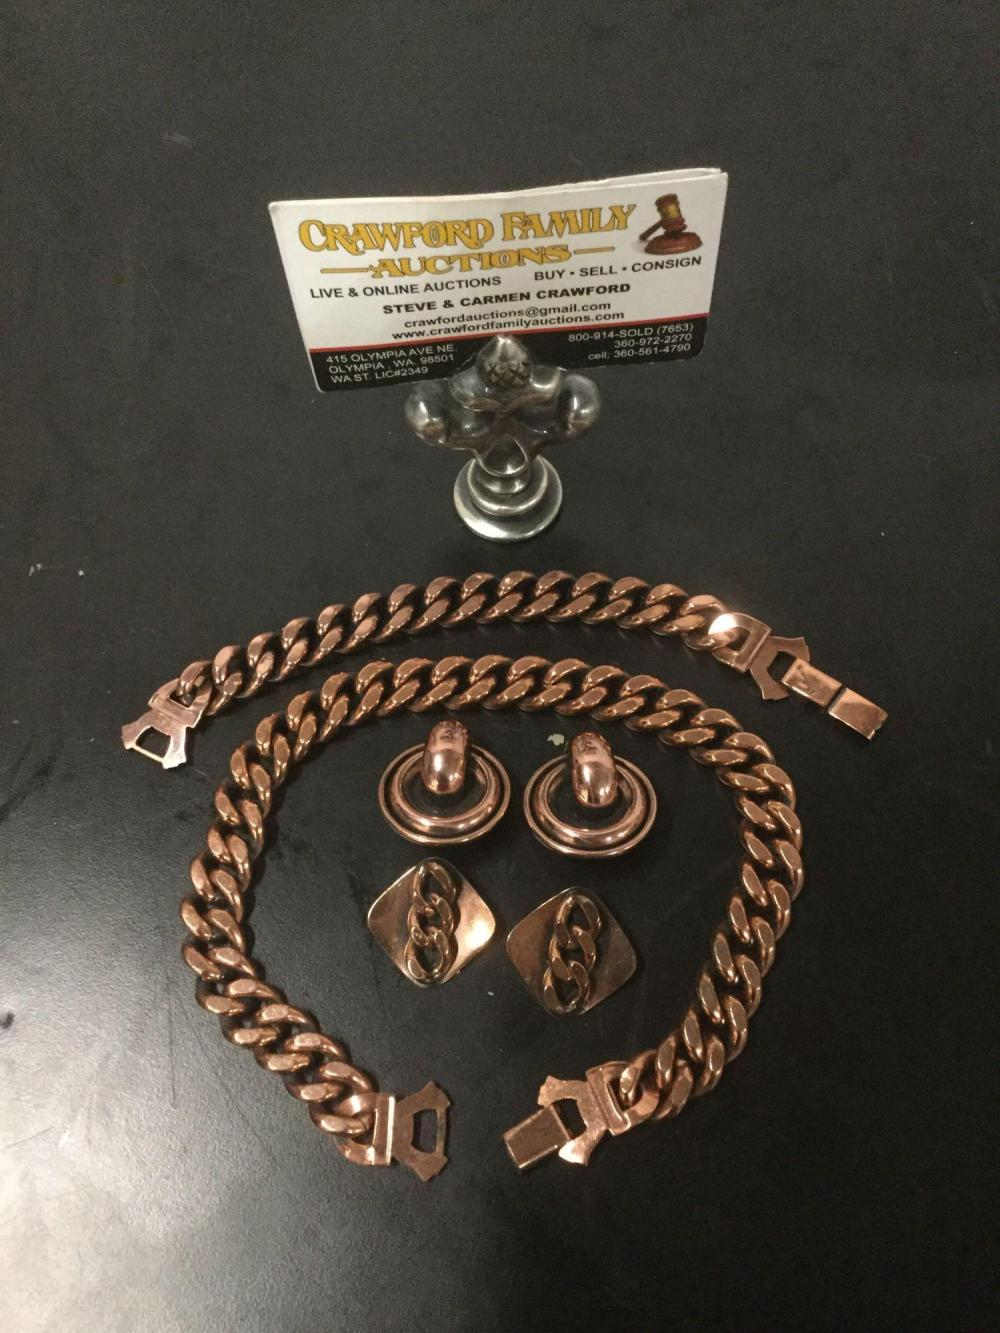 Vintage Renoir copper chain jewelry set - 13 inch necklace, bracelet, and 2 pair of earrings